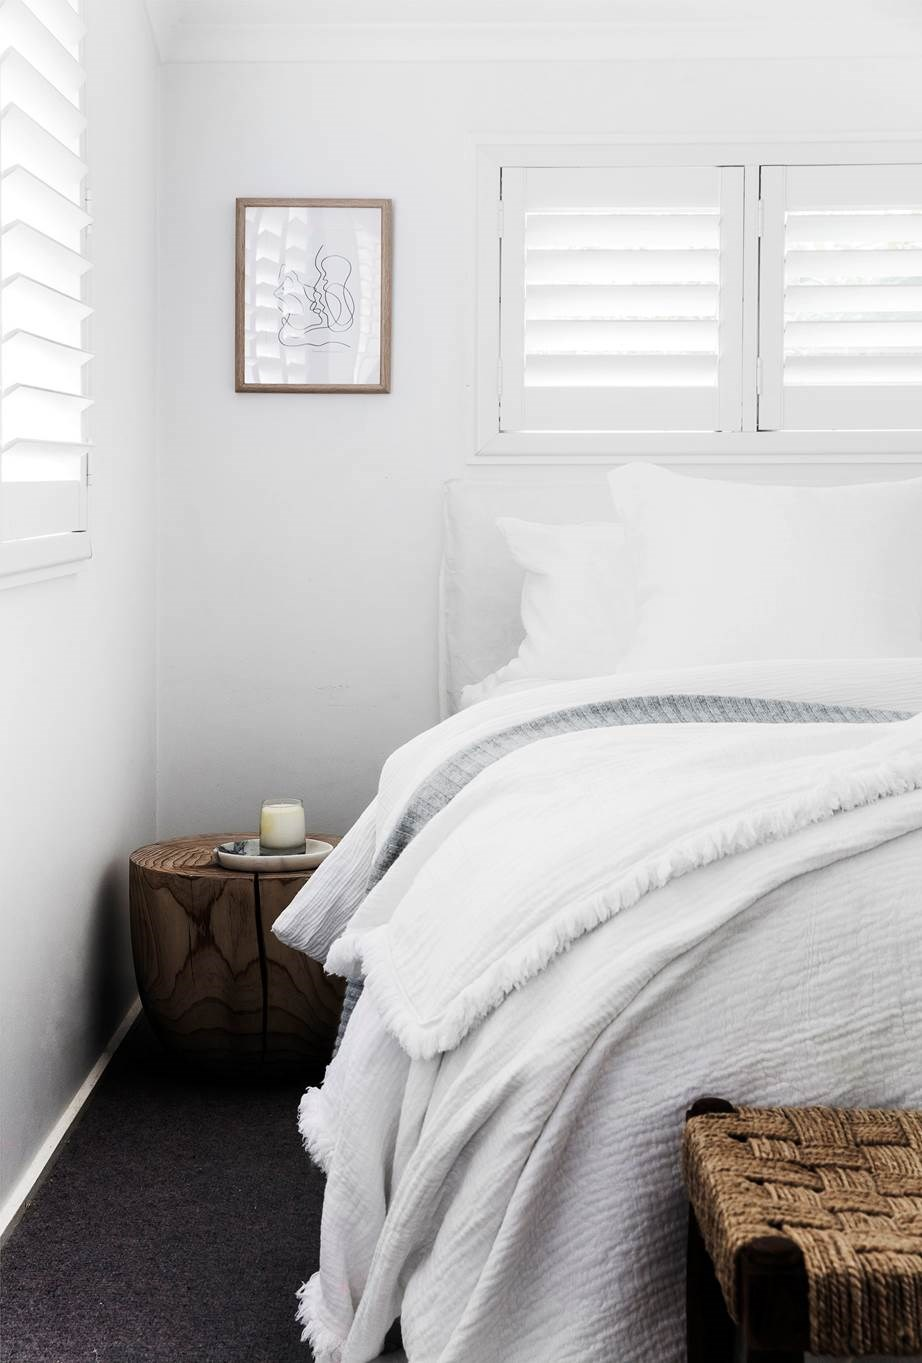 Layers of crisp white cotton sheets and linen throws, this bed a cloud-like aesthetic.